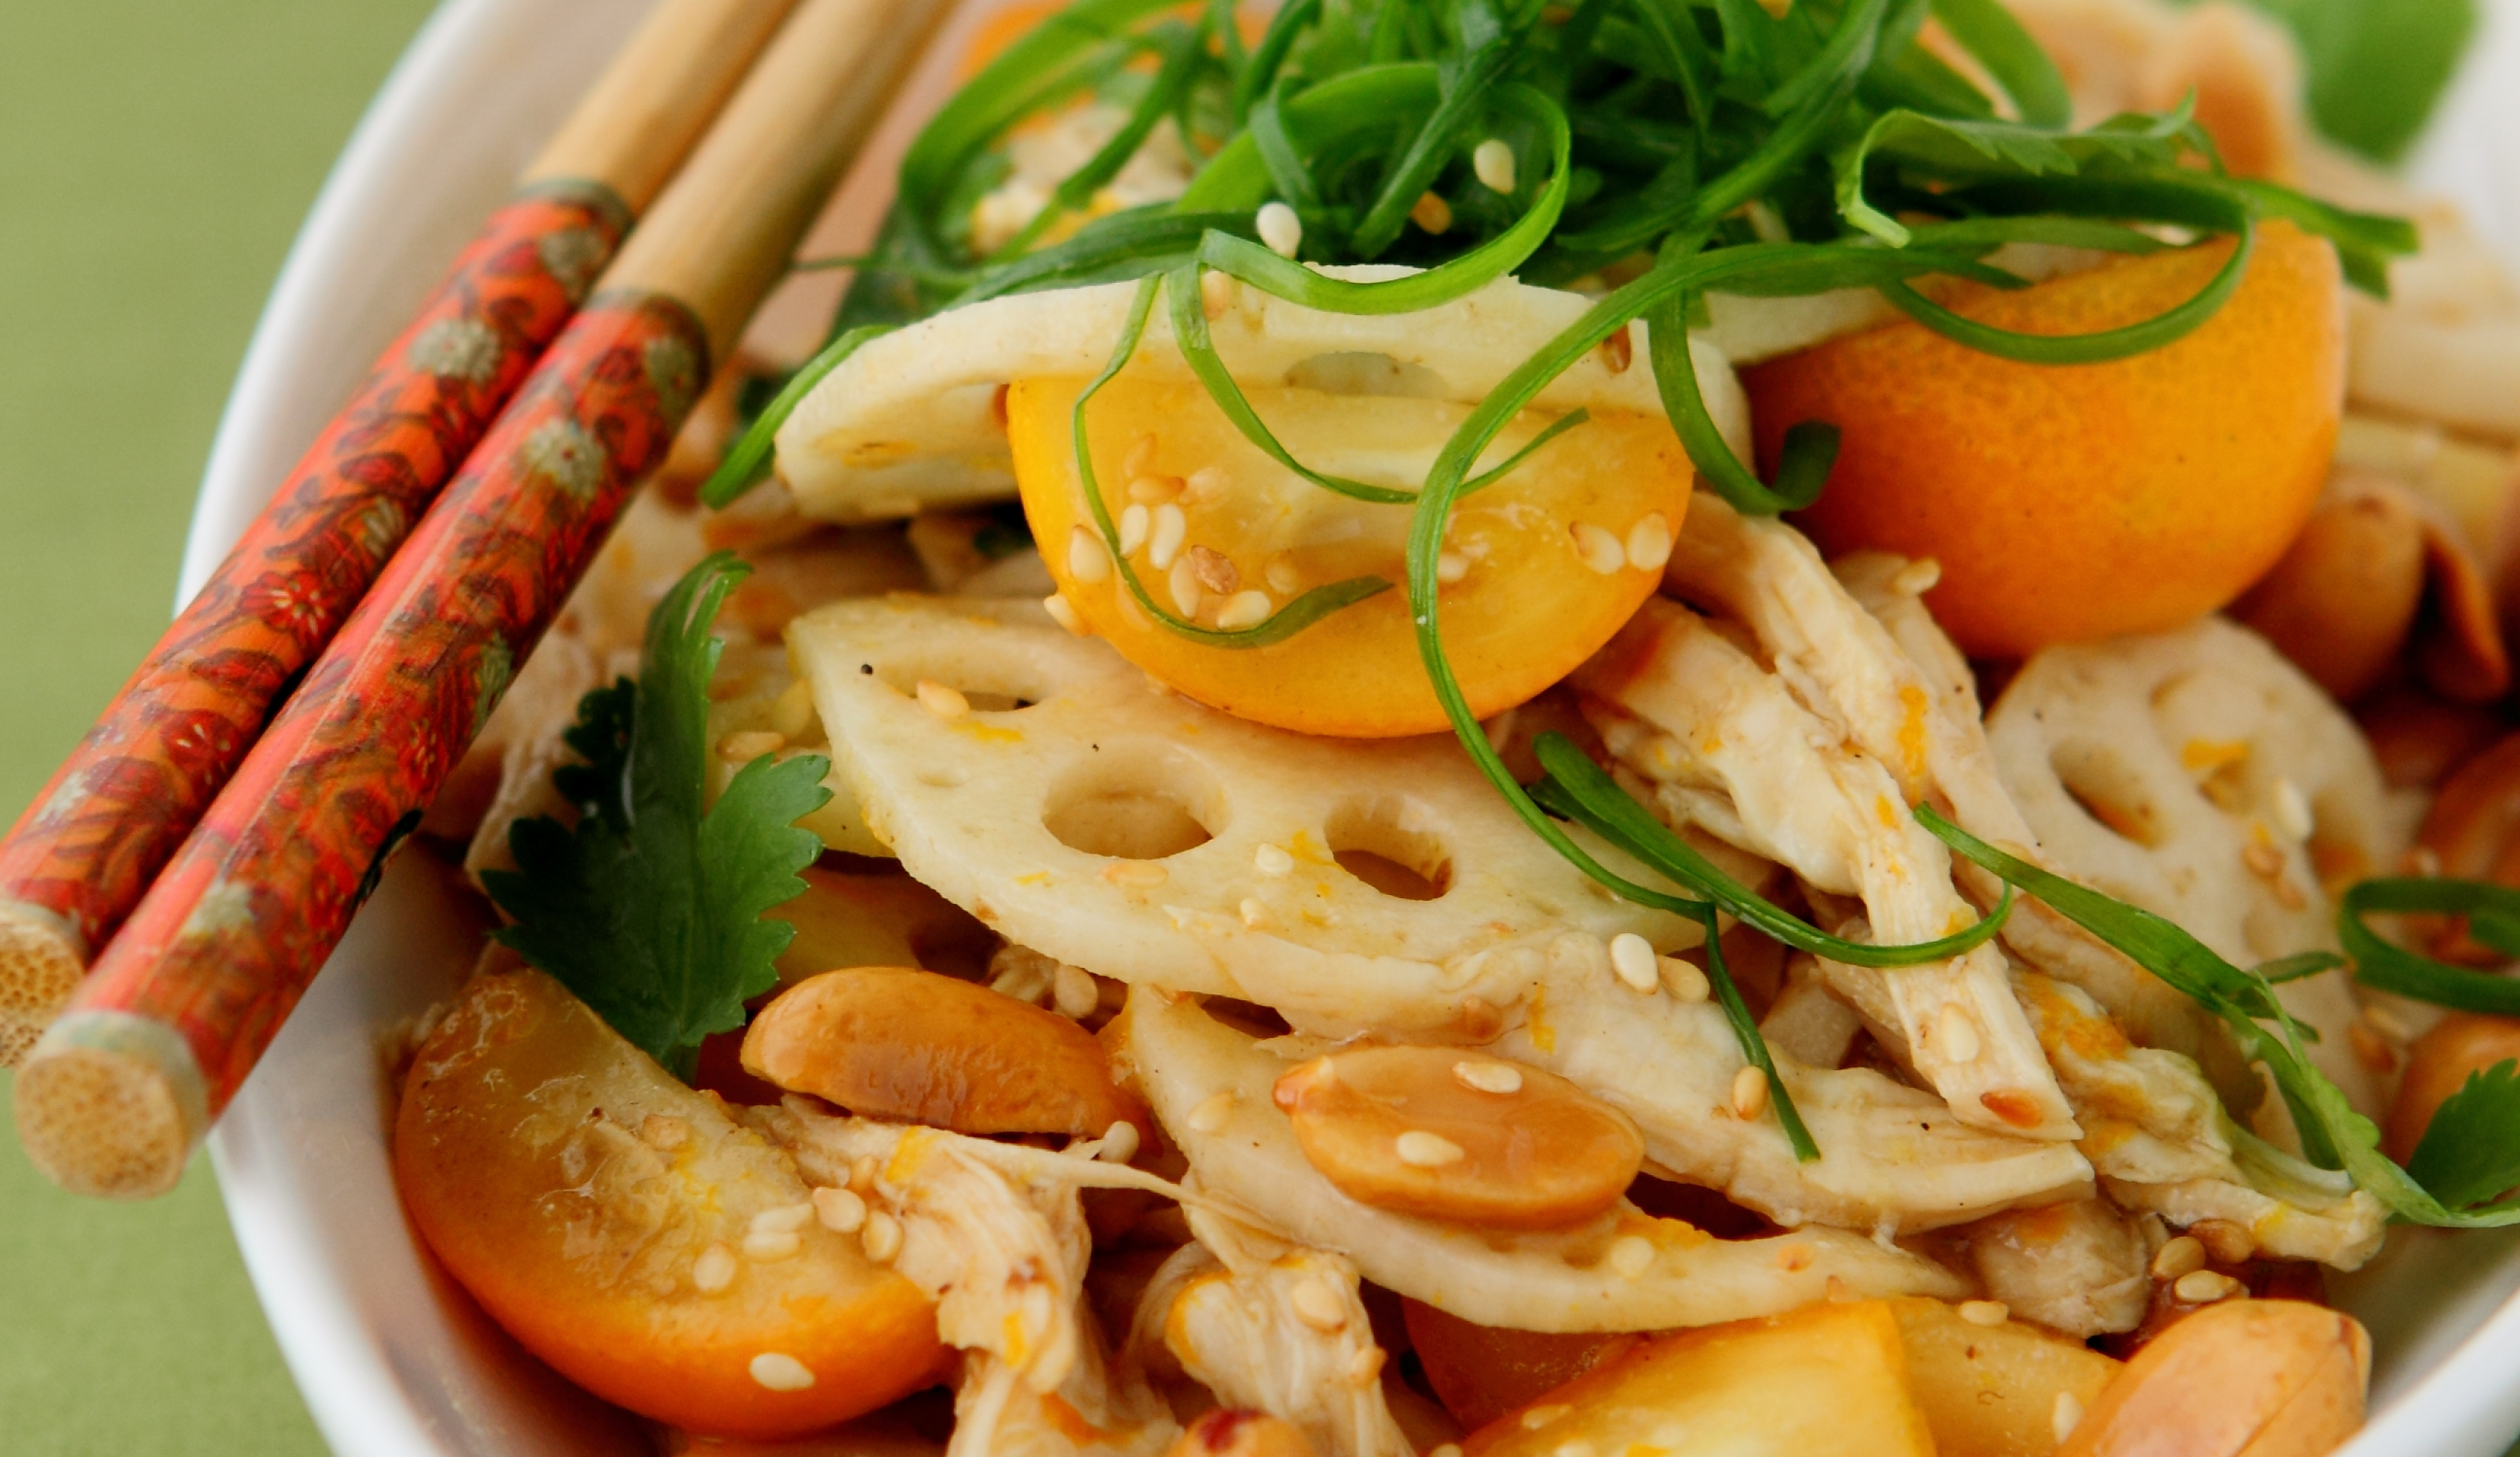 Lotus Root Salad